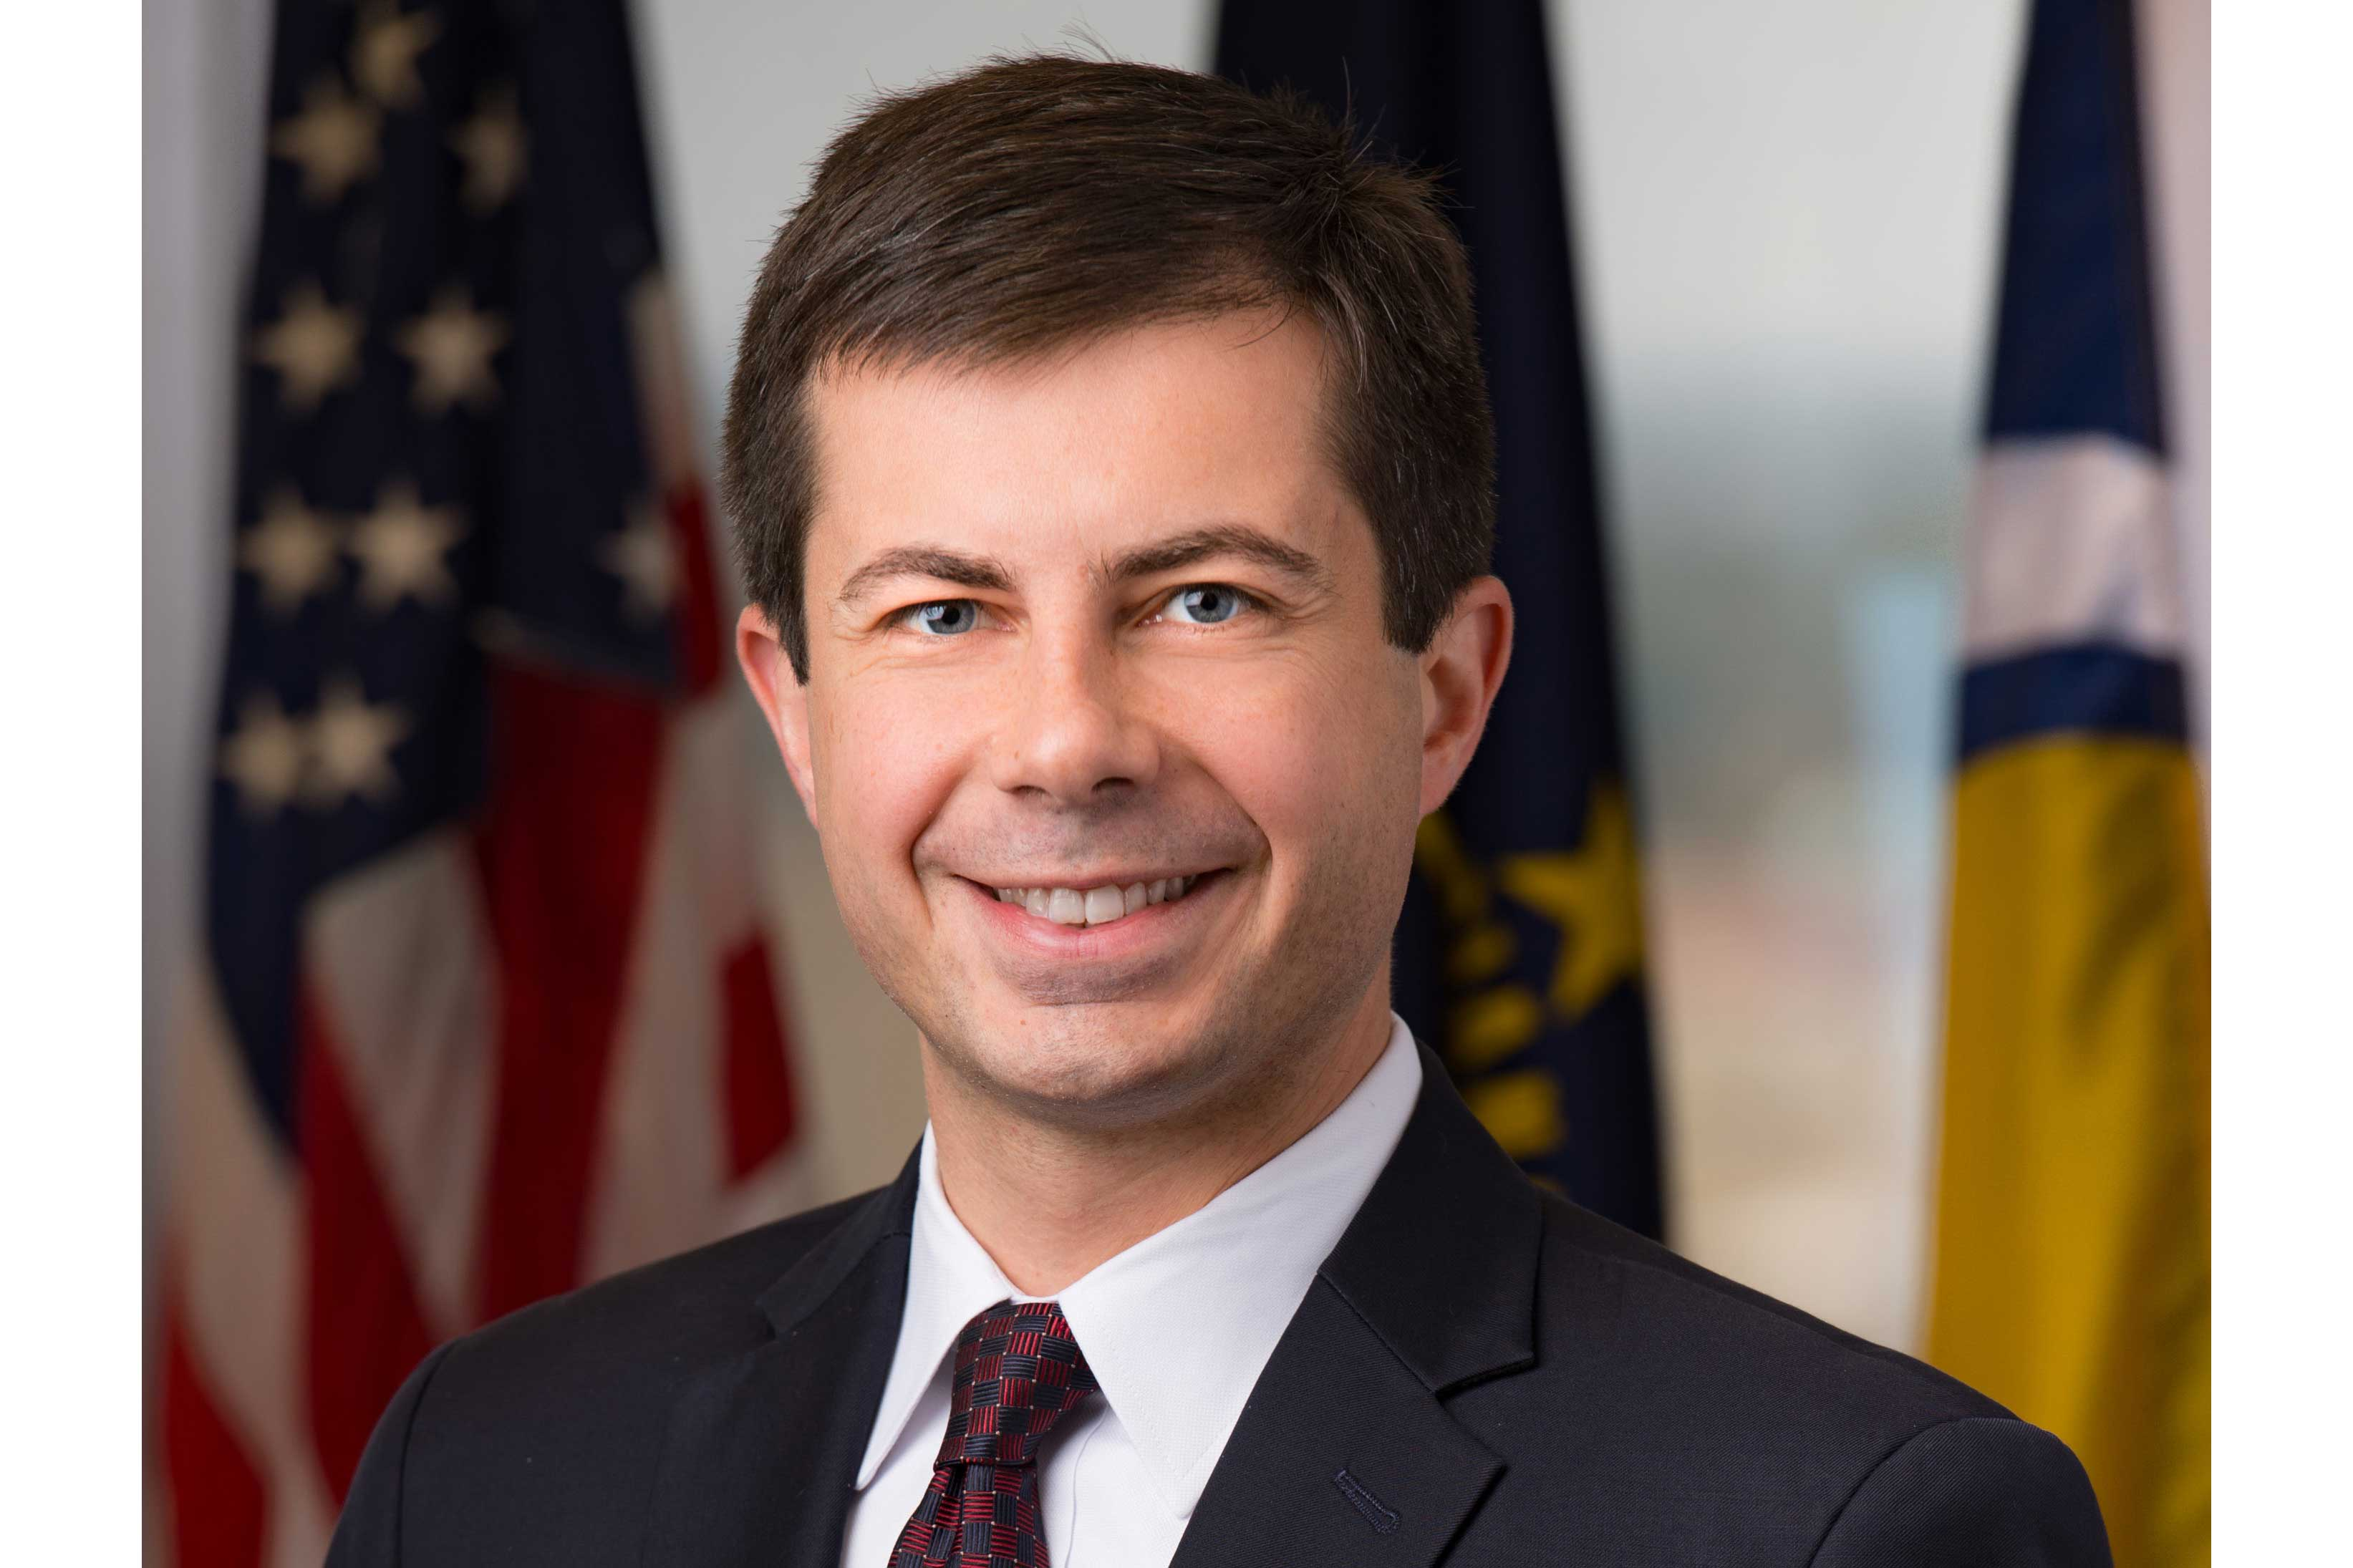 pete_buttigieg_official_portrait.jpg